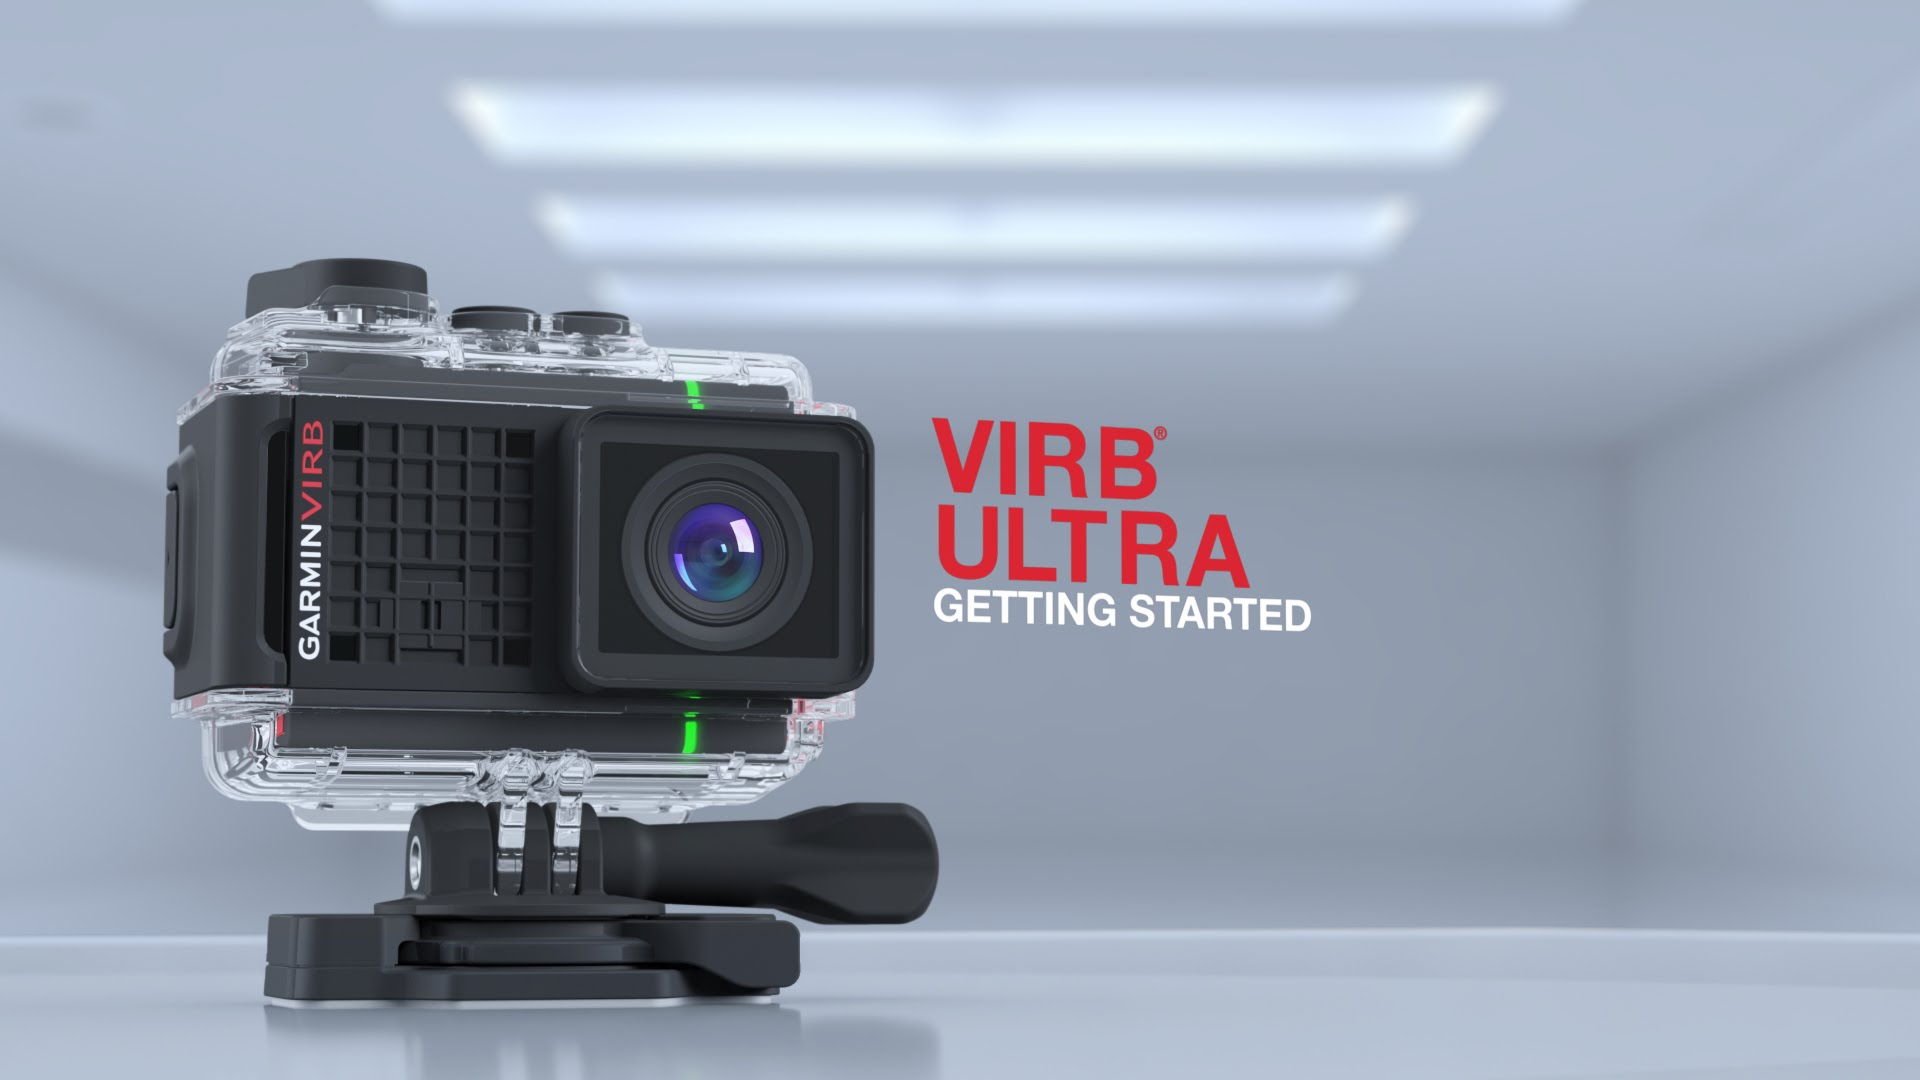 VIRB Ultra: Getting Started